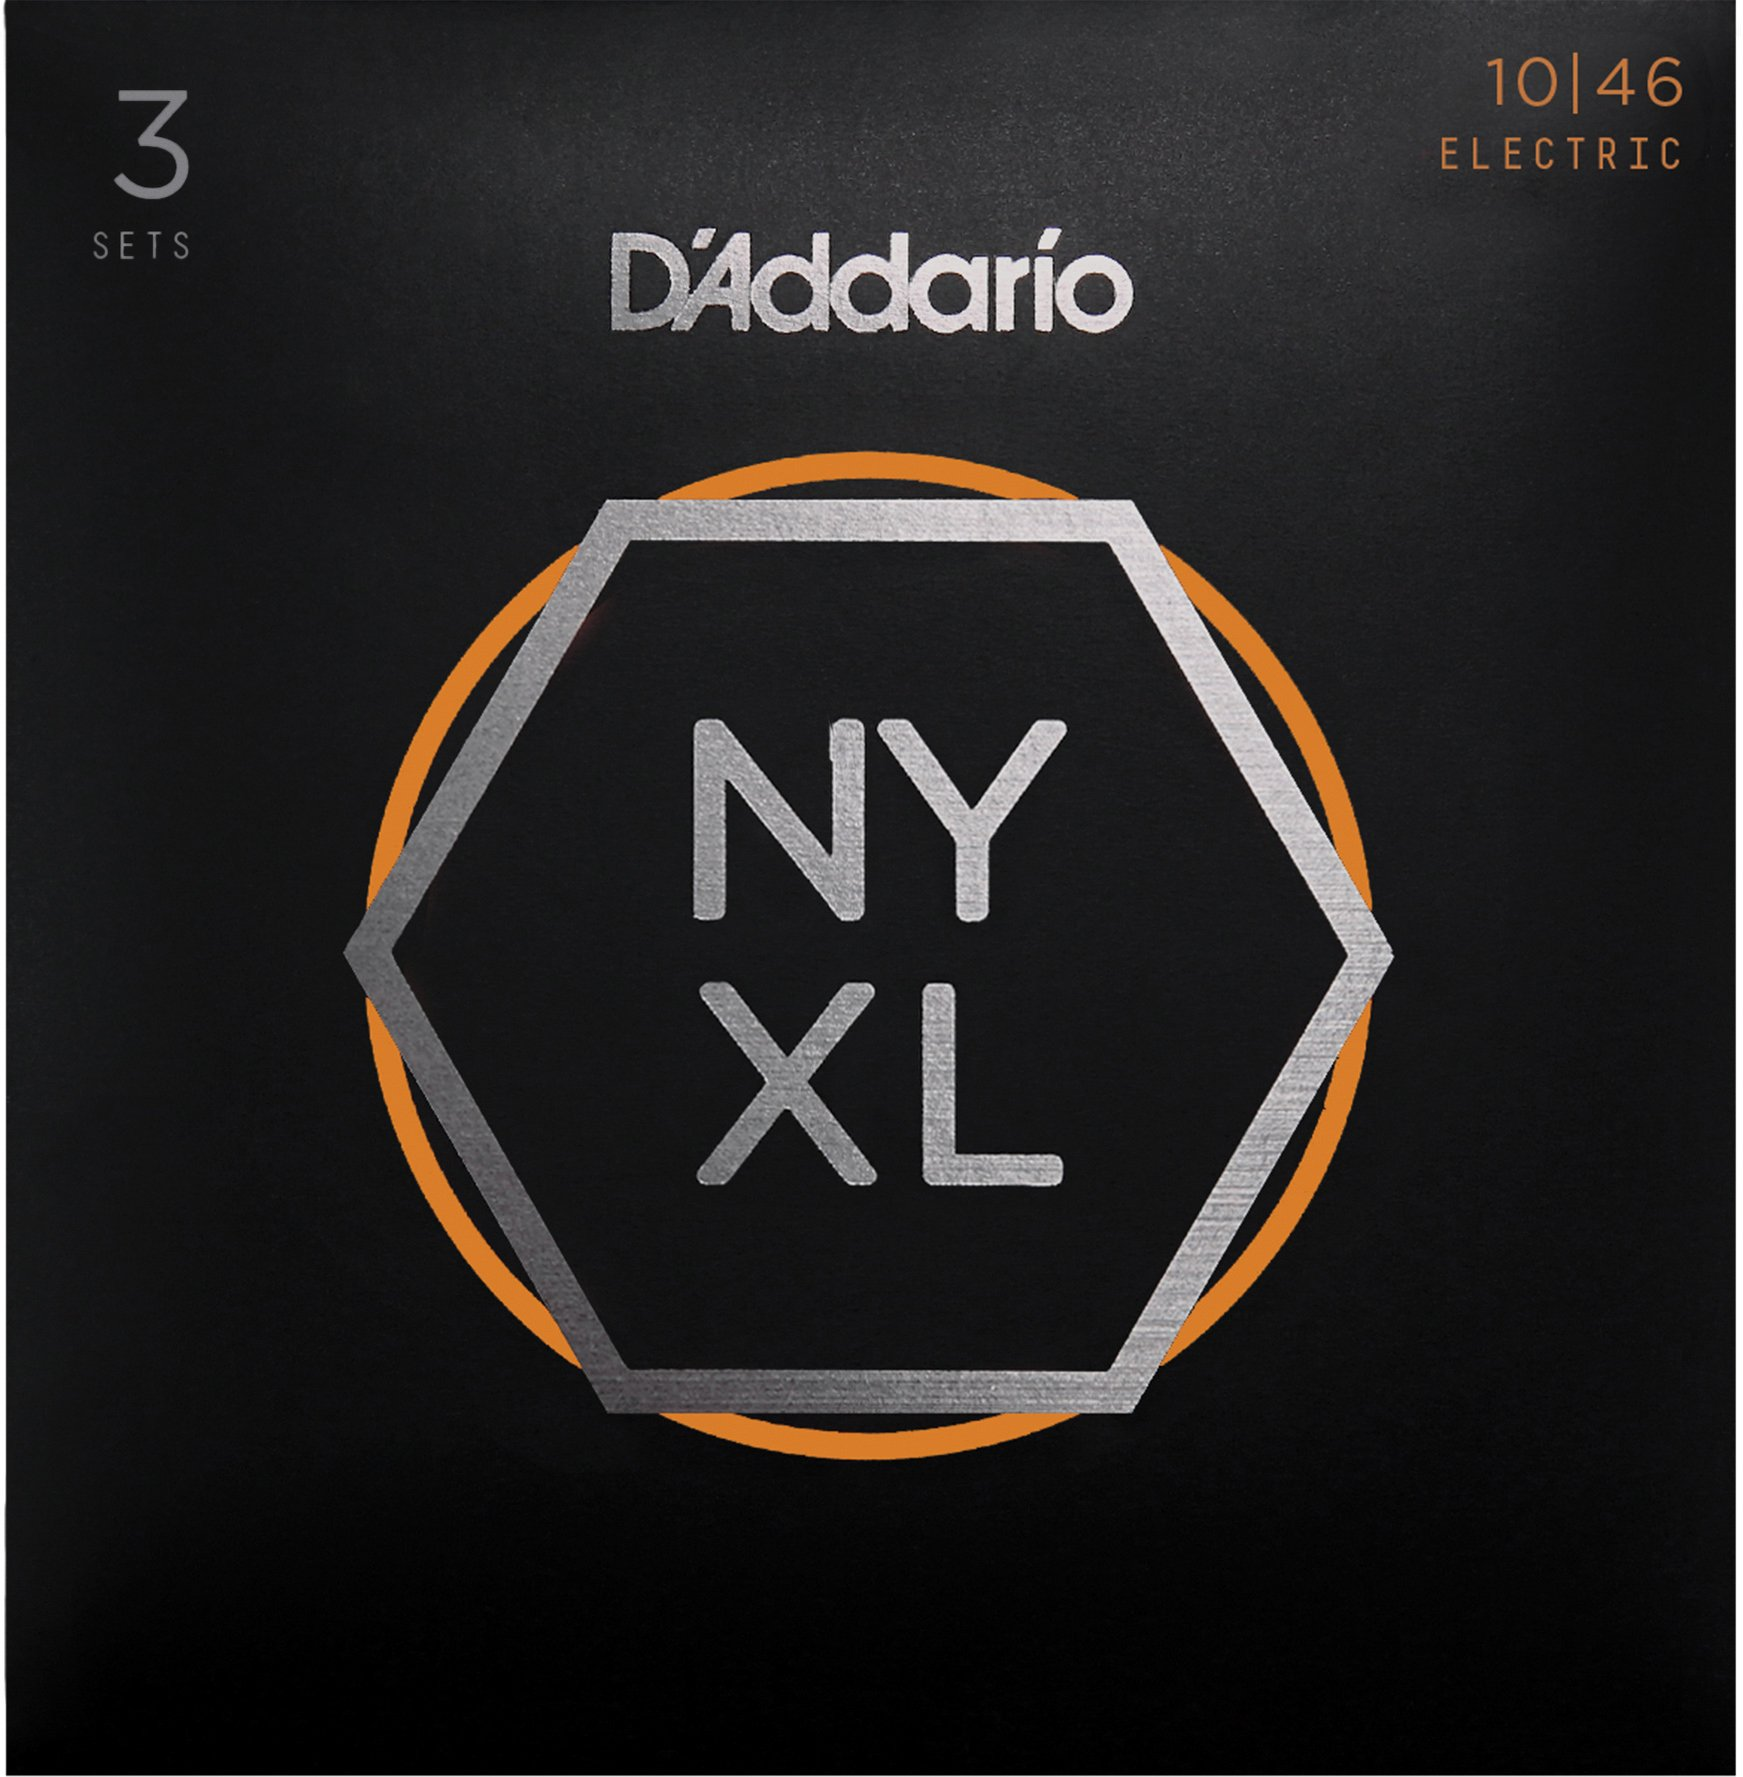 D' Addario NYXL1046 – 3P nickel Wound – Corde per chitarra elettrica (Regular Light, 10 – 46, 3 Set)